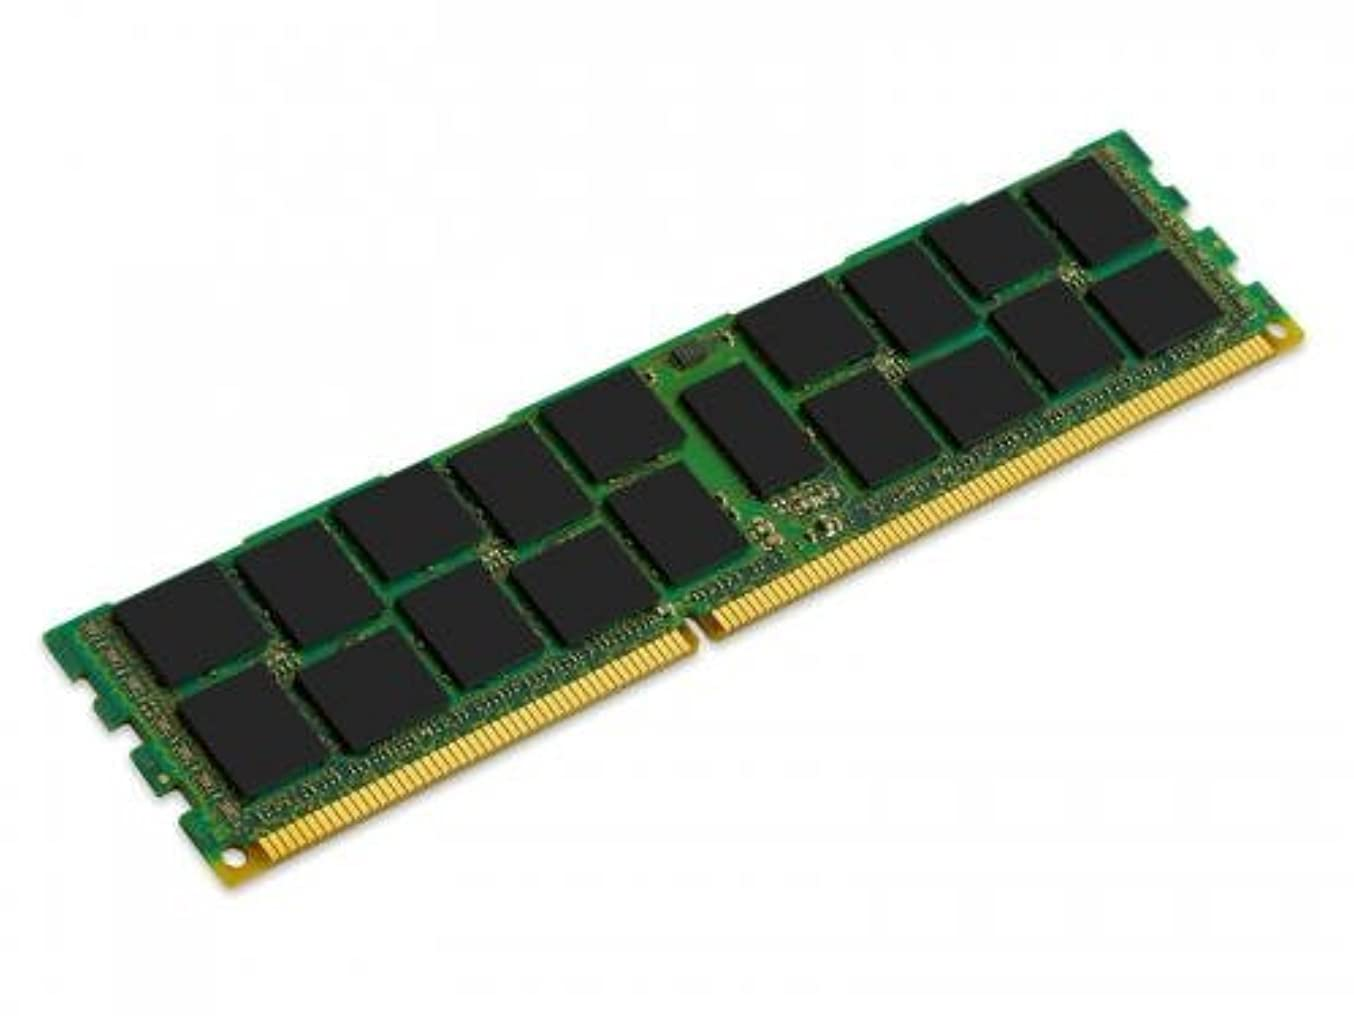 支店明確な愚かなKingston Technology 16GB 1866MHz PC3-14900 Reg ECC DIMM for Selected HP/Compaq Servers KTH-PL318/16G [並行輸入品]